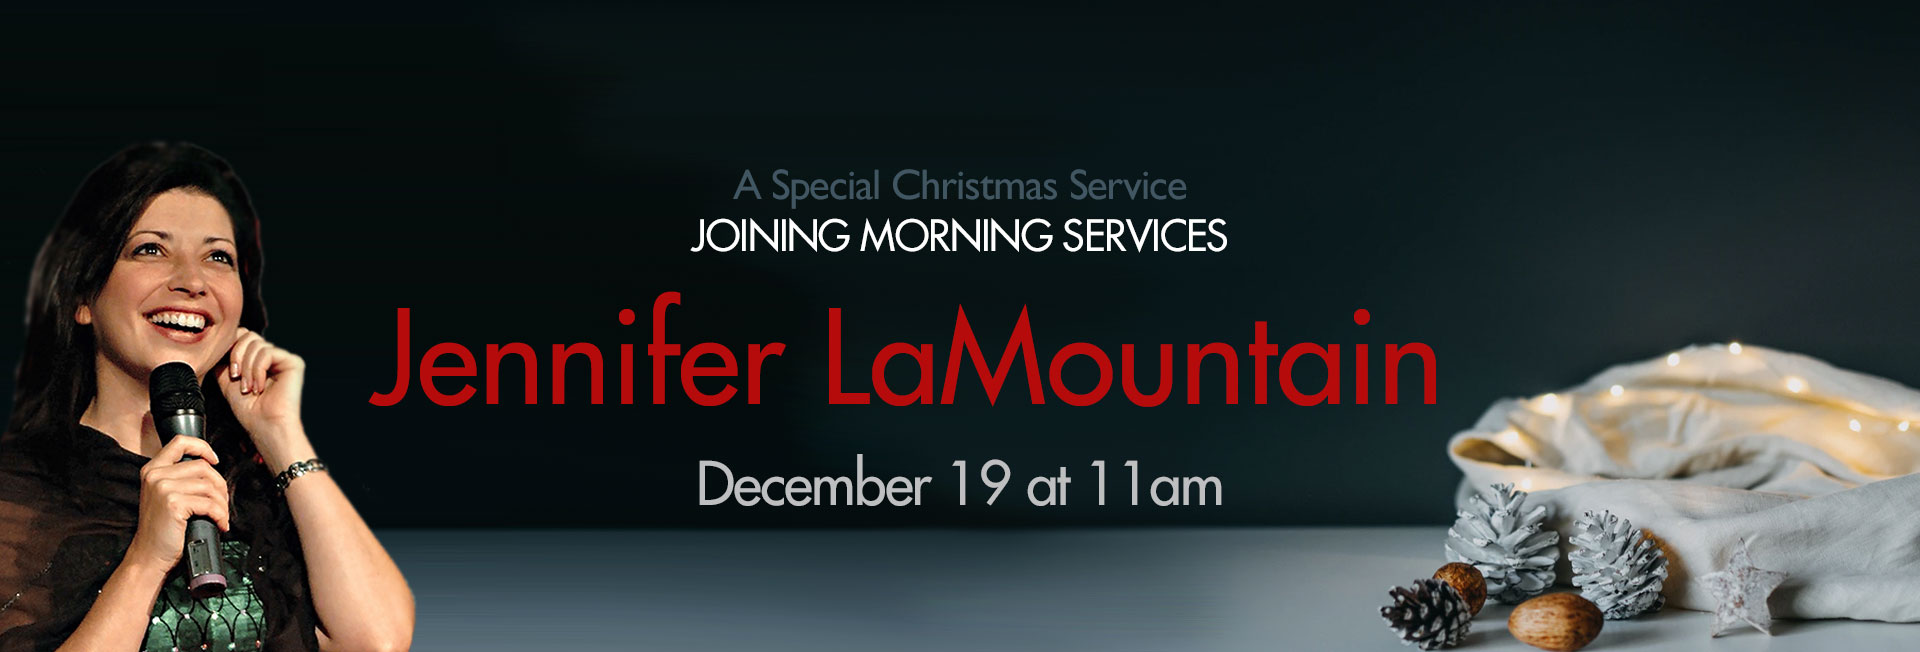 Jennifer LaMountain Christmas service December 19 at 11am